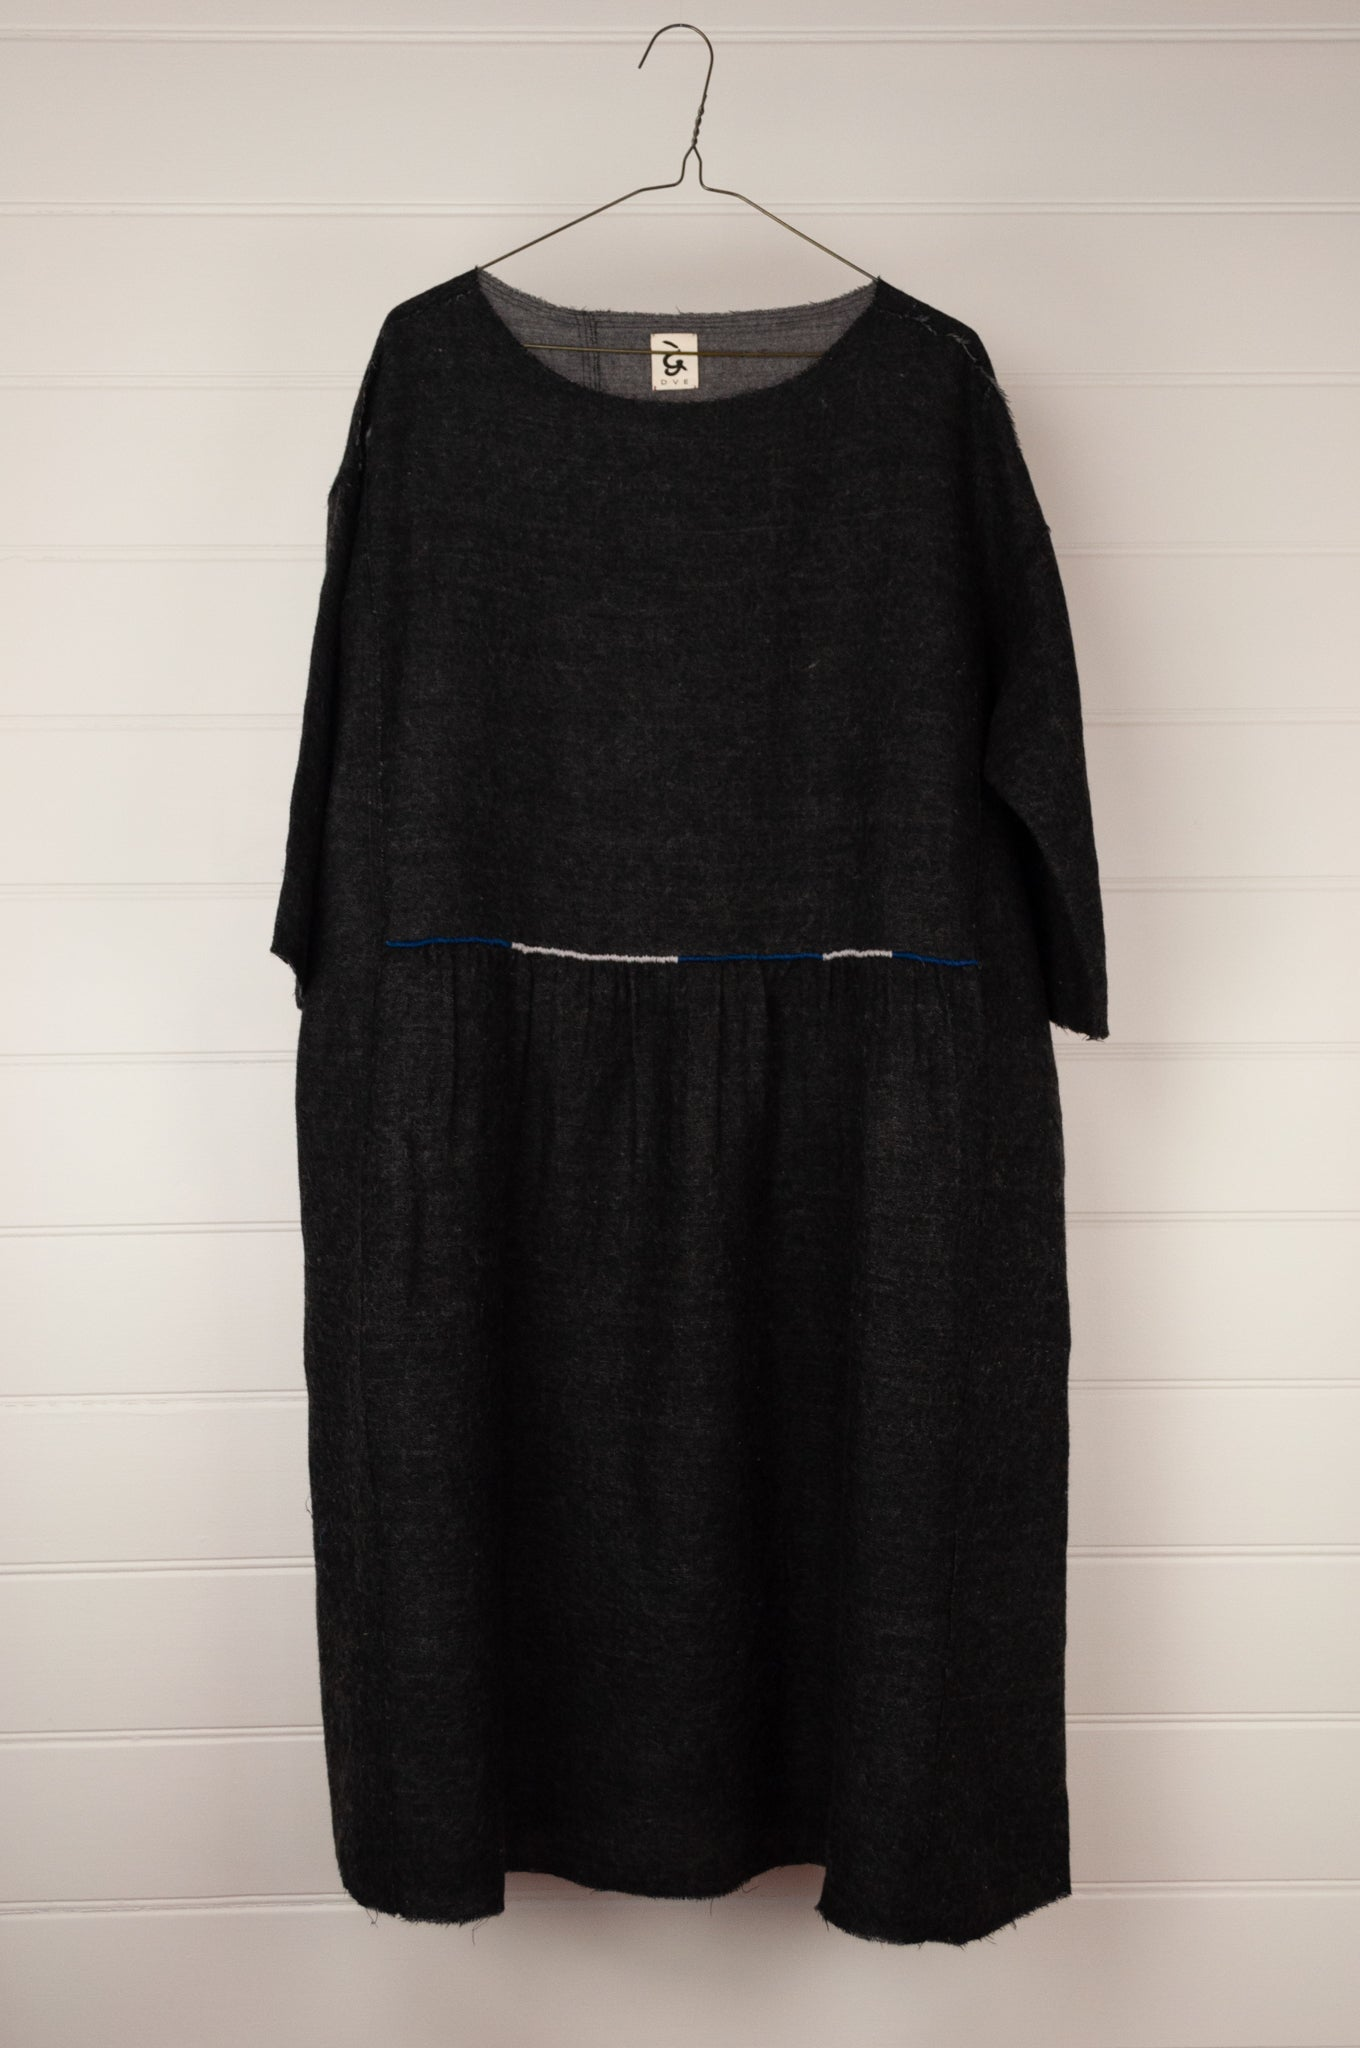 Dve 100% charcoal boiled wool, one size Padma dress, embroidered detail at gathered front waist panel, pockets and three quarter sleeves.